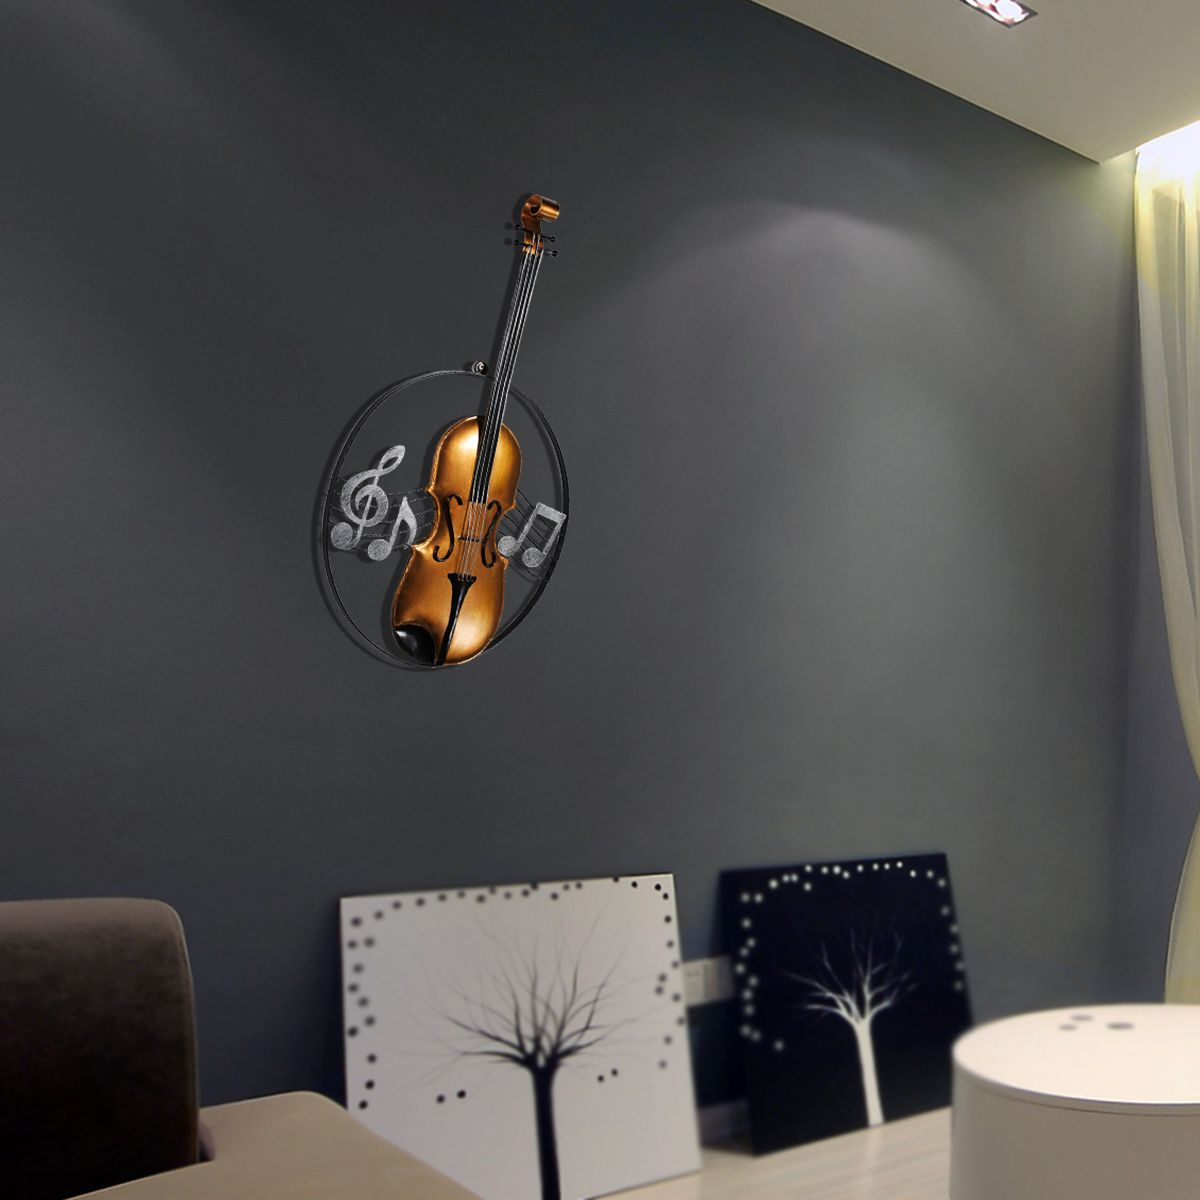 Tooarts metal wall sculpture violin hanging ornament home decor tooarts metal wall sculpture violin hanging ornament home decor wall hangings decor music instrument craft gift in statues sculptures from home garden amipublicfo Choice Image